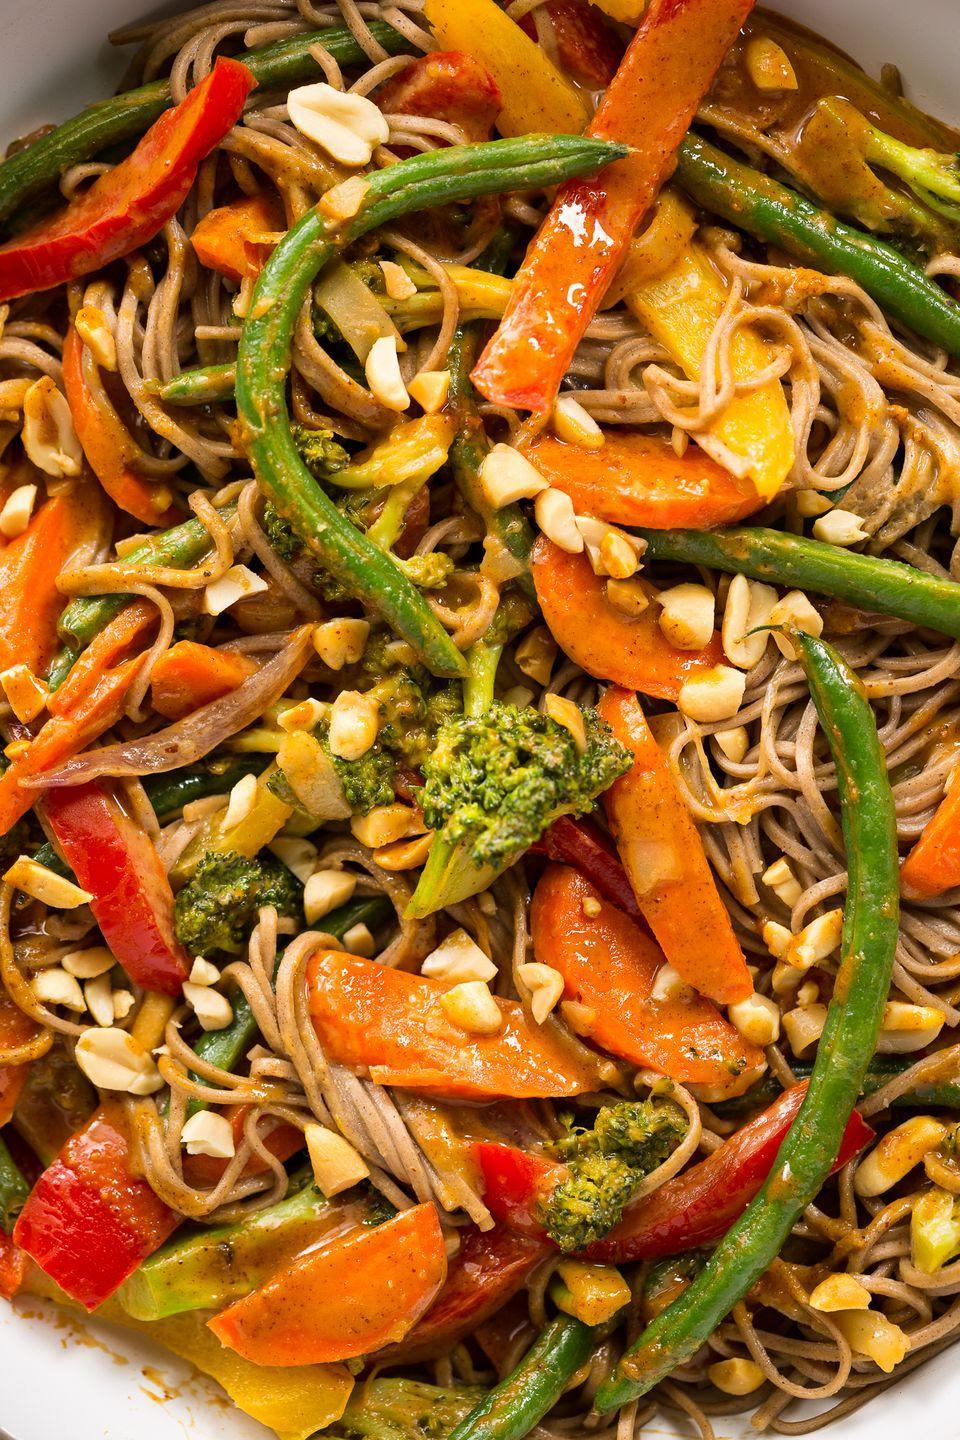 """<p>We're going (pea)NUTS for this Thai-inspired sauce.</p><p>Get the recipe from <a href=""""https://www.delish.com/cooking/recipe-ideas/recipes/a46829/rainbow-stir-fry-recipe/"""" rel=""""nofollow noopener"""" target=""""_blank"""" data-ylk=""""slk:Delish"""" class=""""link rapid-noclick-resp"""">Delish</a>. </p>"""